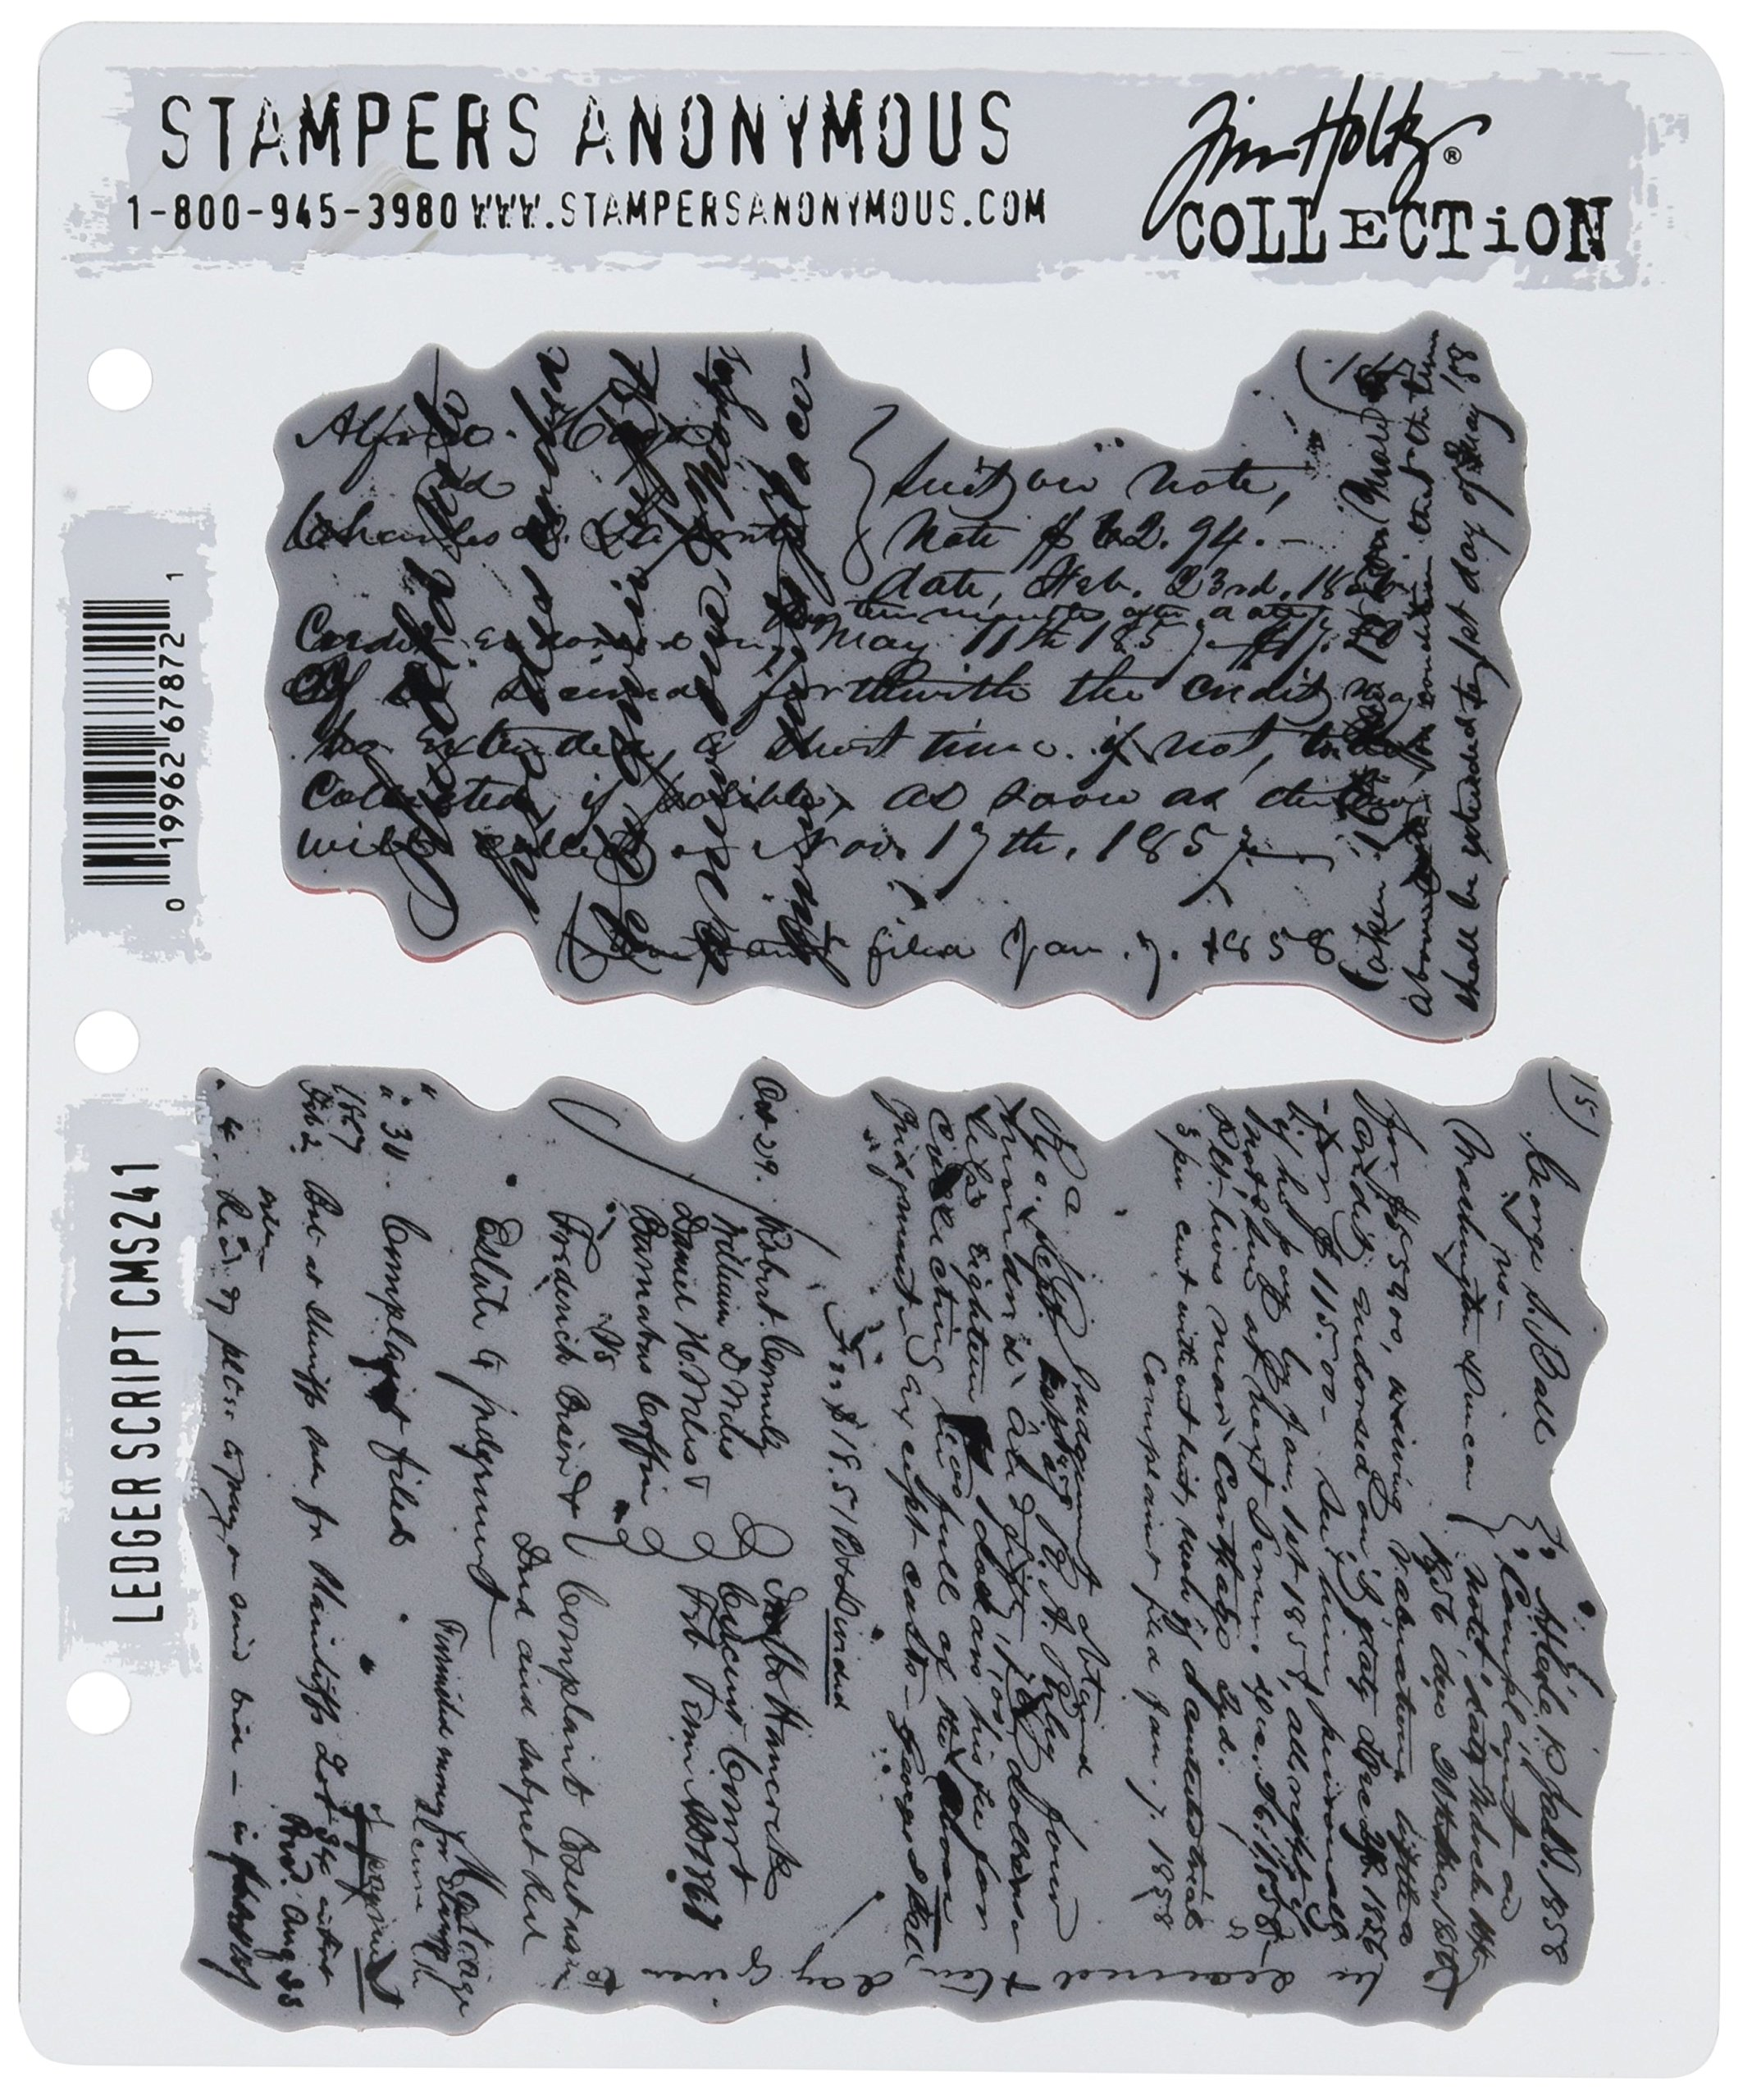 Stampers Anonymous Tim Holtz Cling Rubber Stamp Set, 7'' by 8.5'', Ledger Script